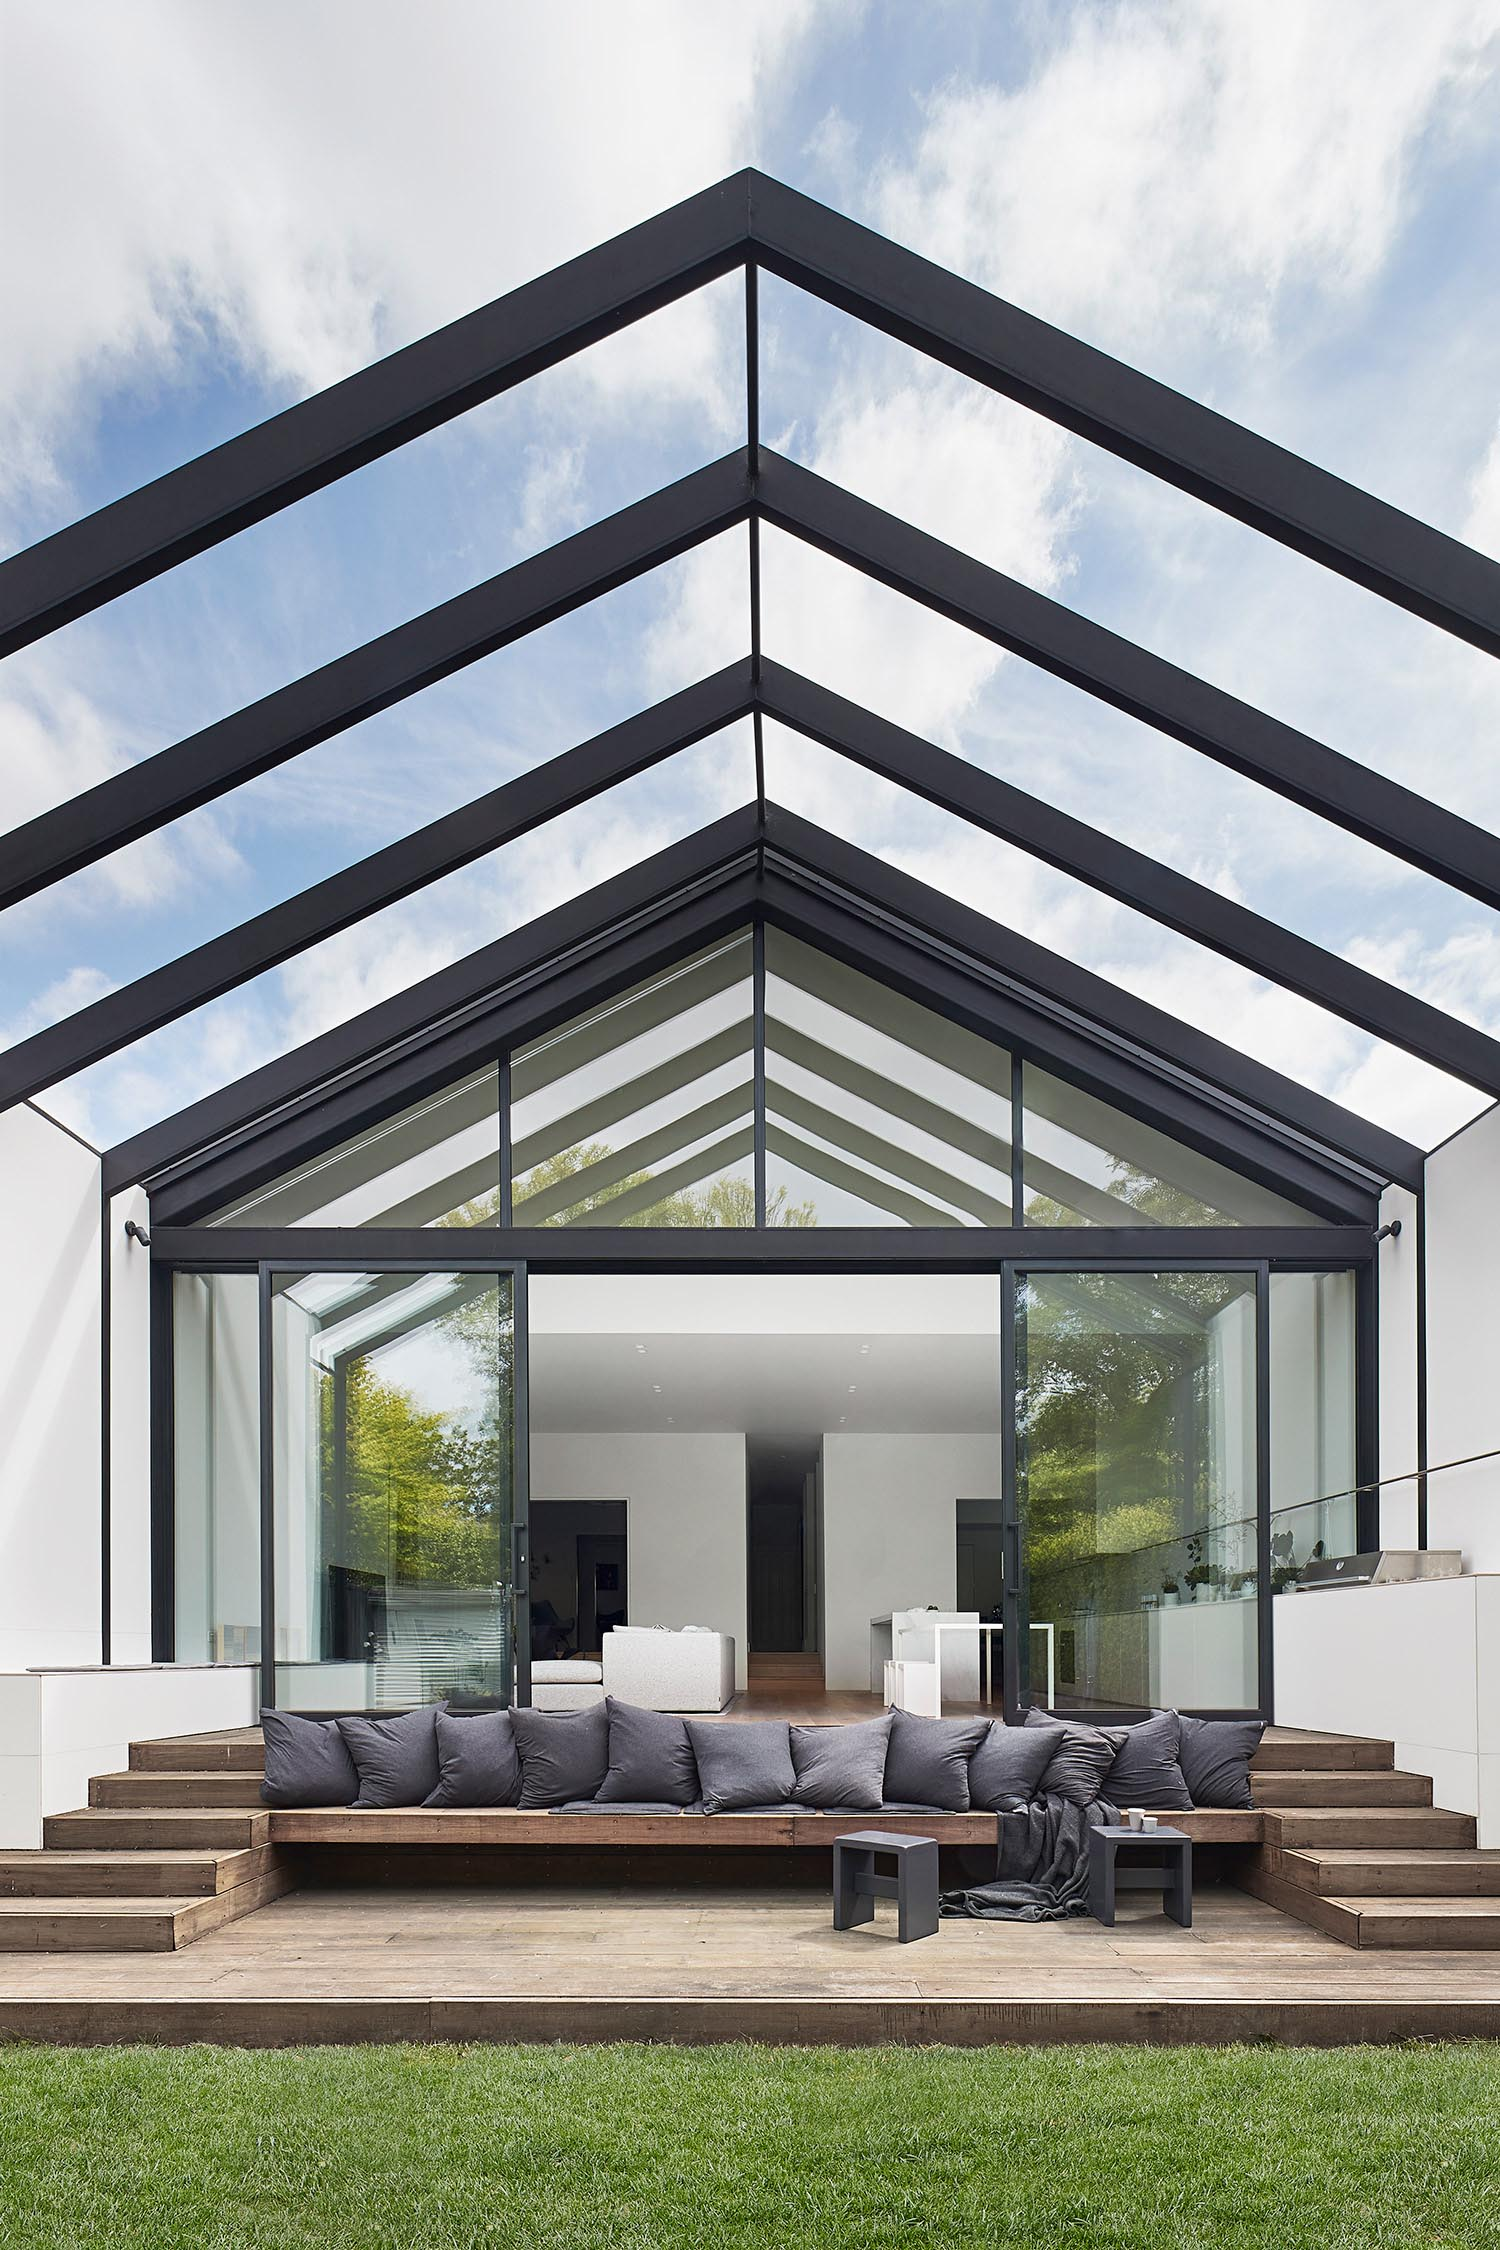 The large glass wall has been combined with black-framed sliding glass doors that create a cohesive look.